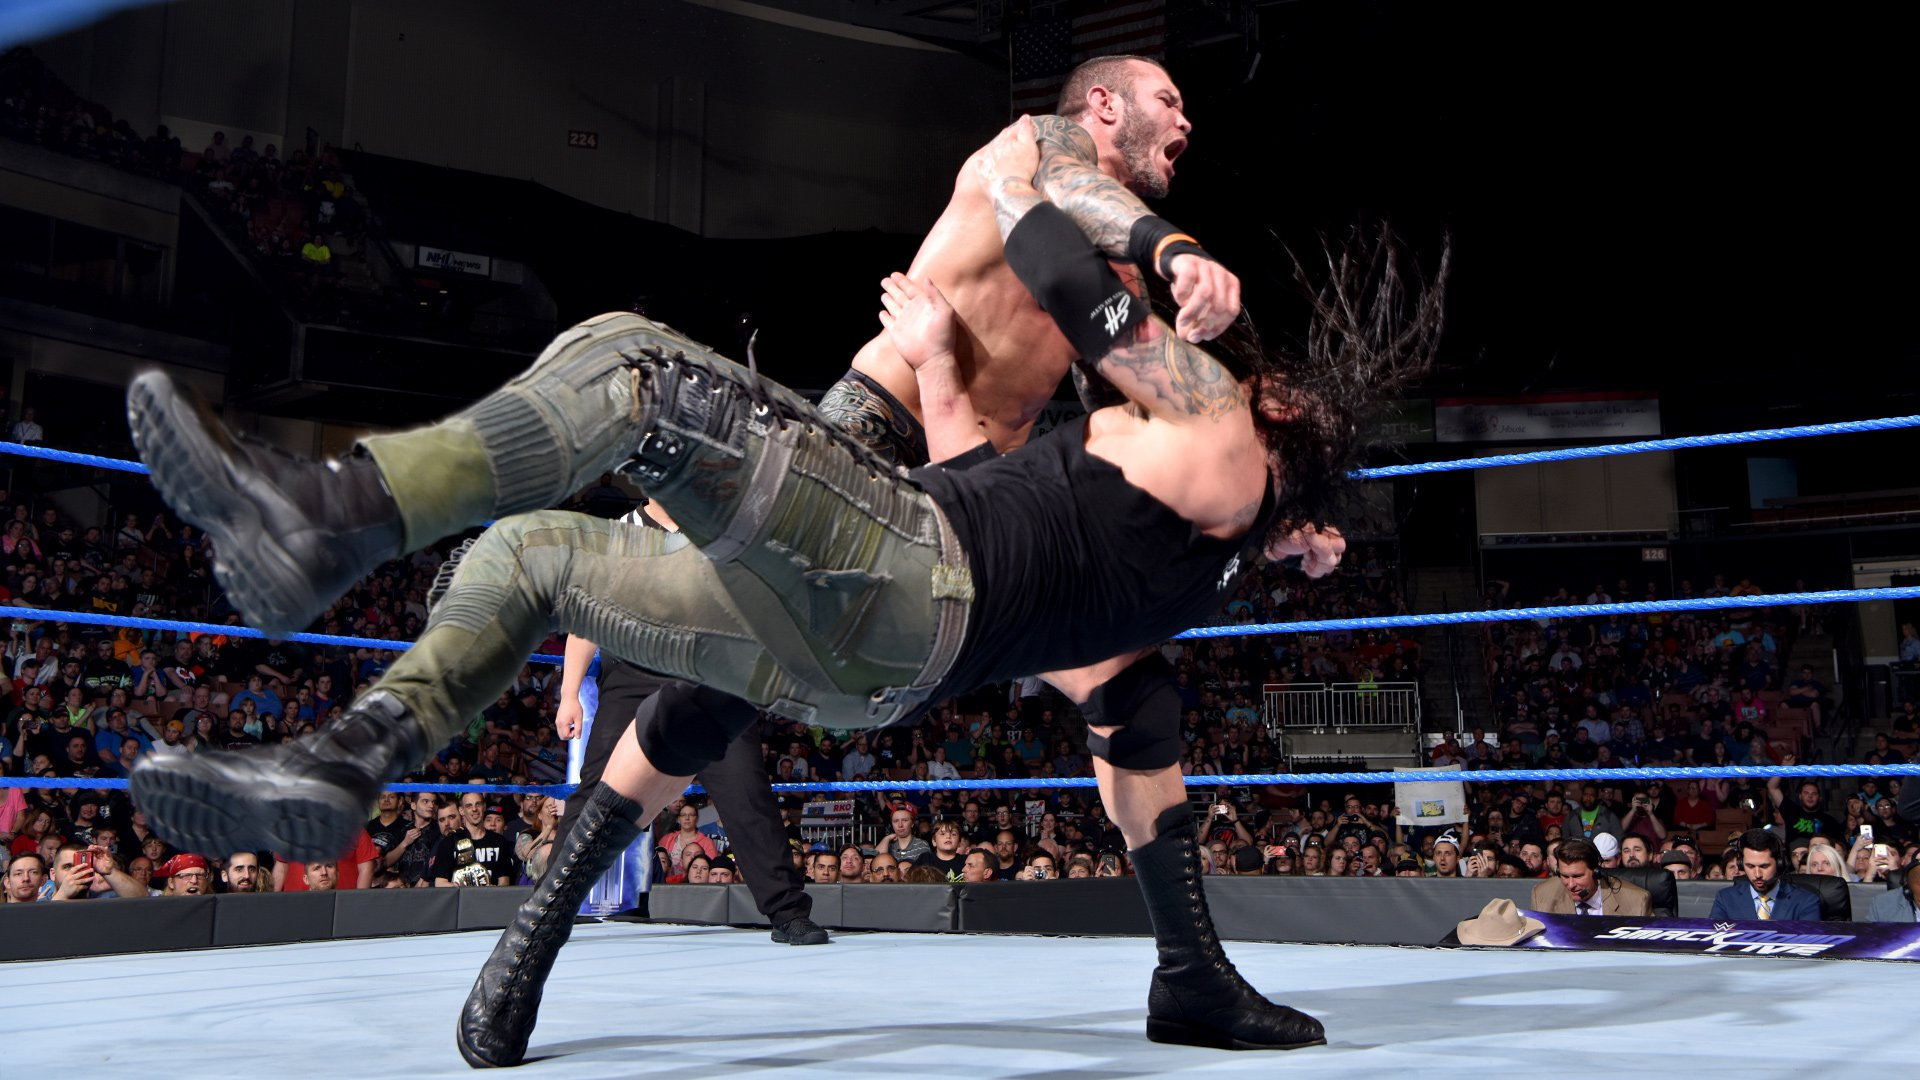 Orton sends Corbin to the mat with a clothesline...